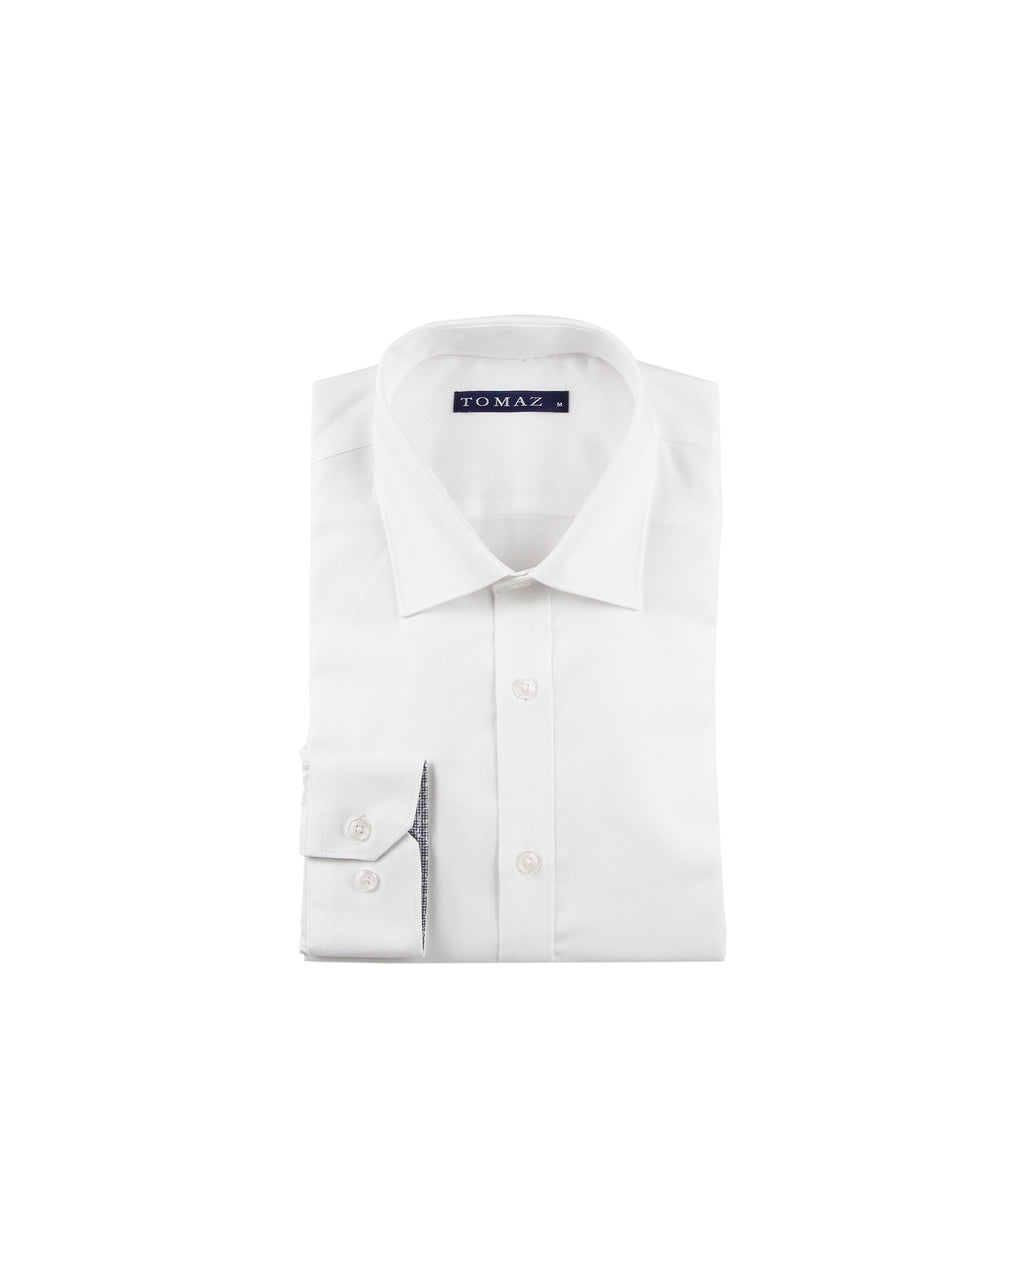 Tomaz TSW05 Formal Shirt (White)